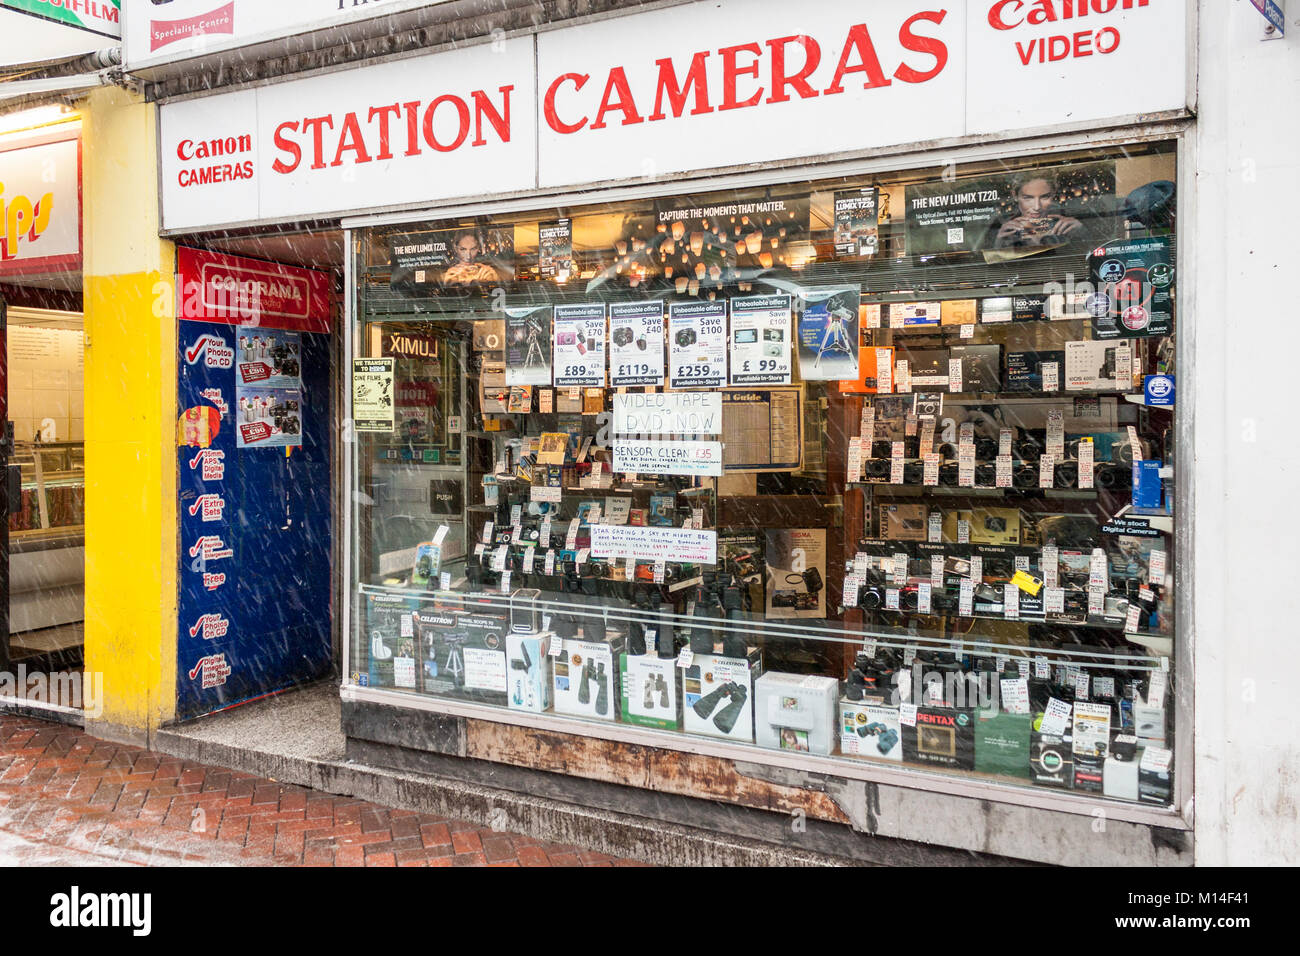 Station Cameras, a former independent camera store. Reading, Berkshire, England, GB, UK - Stock Image